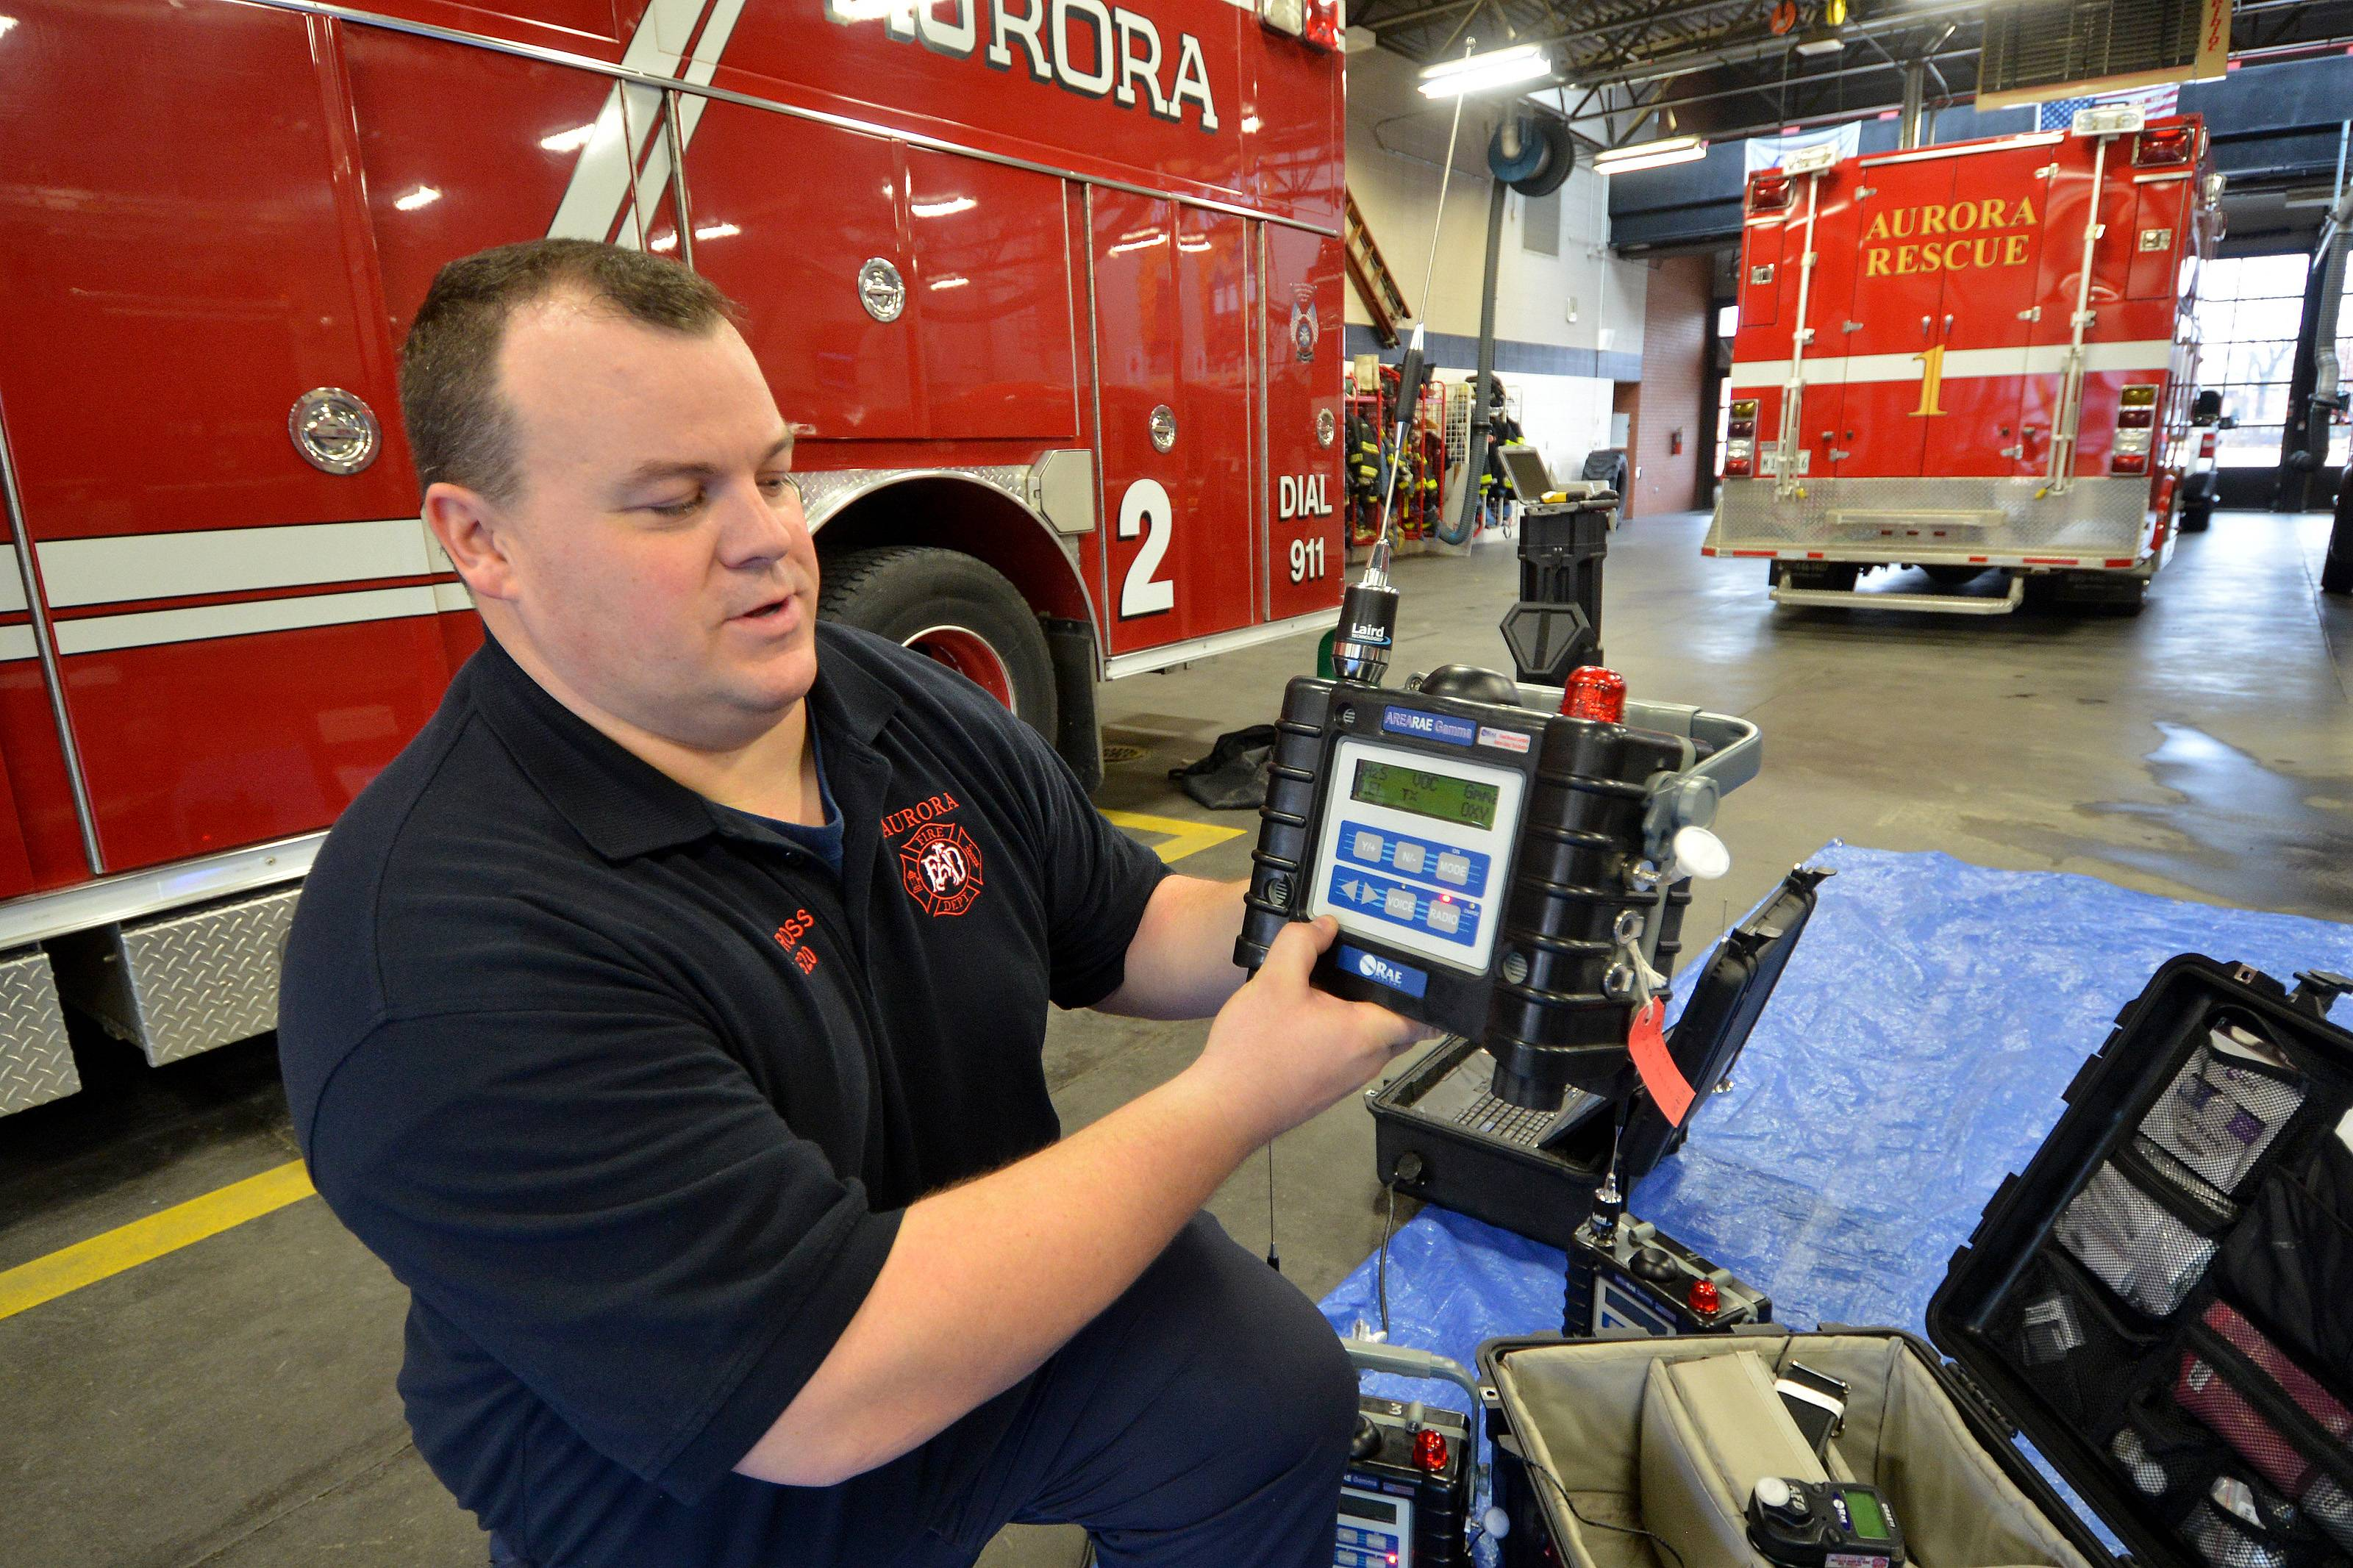 Aurora firefighter/paramedic John Ross, a hazmat specialist, demonstrates equipment that detects and identifies hazardous chemicals.